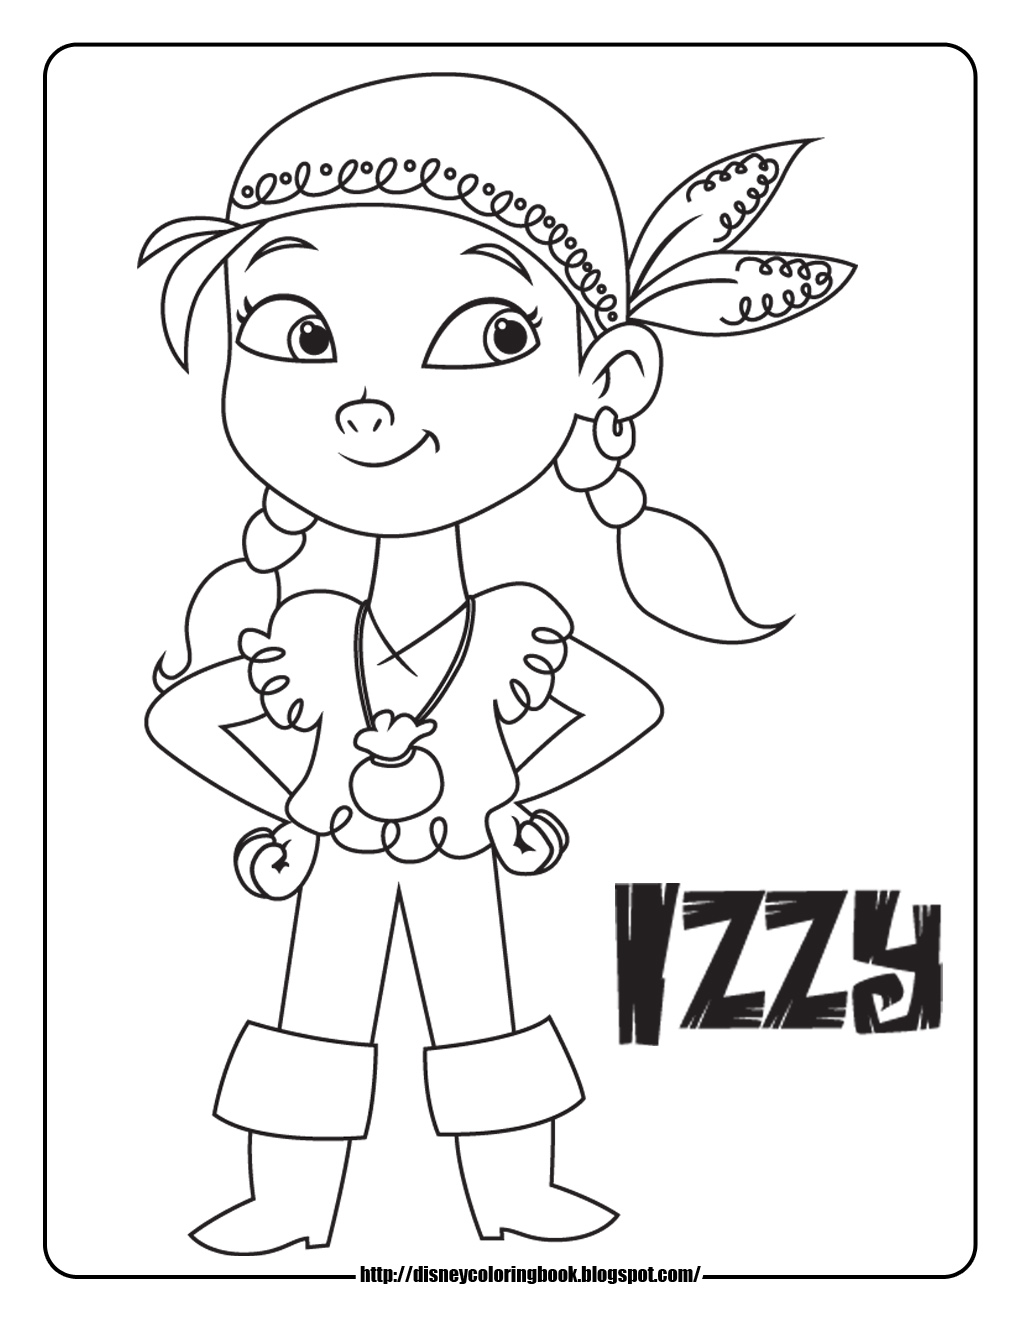 disney pirates coloring pages - photo#7